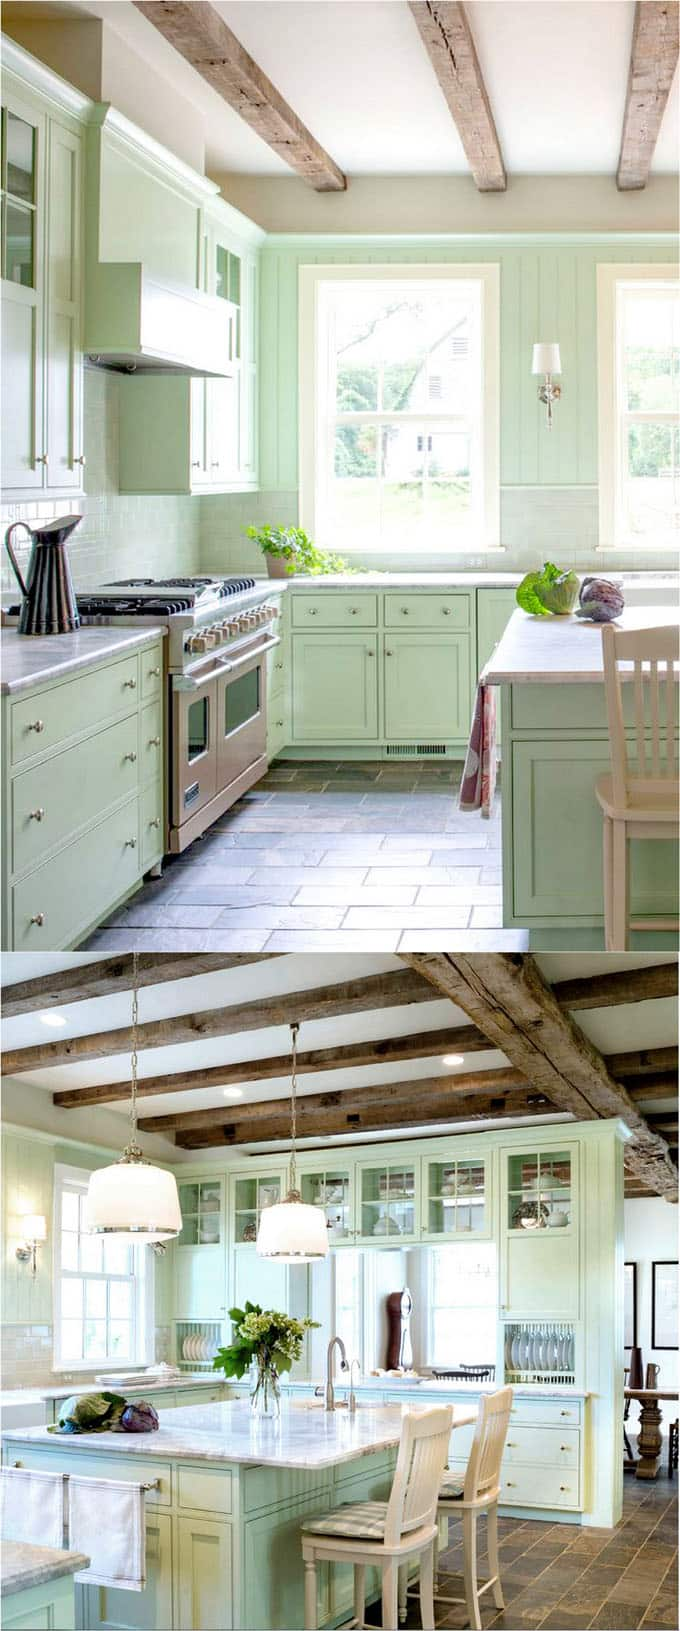 25 Gorgeous Kitchen Cabinet Colors & Paint Color Combos - A ...